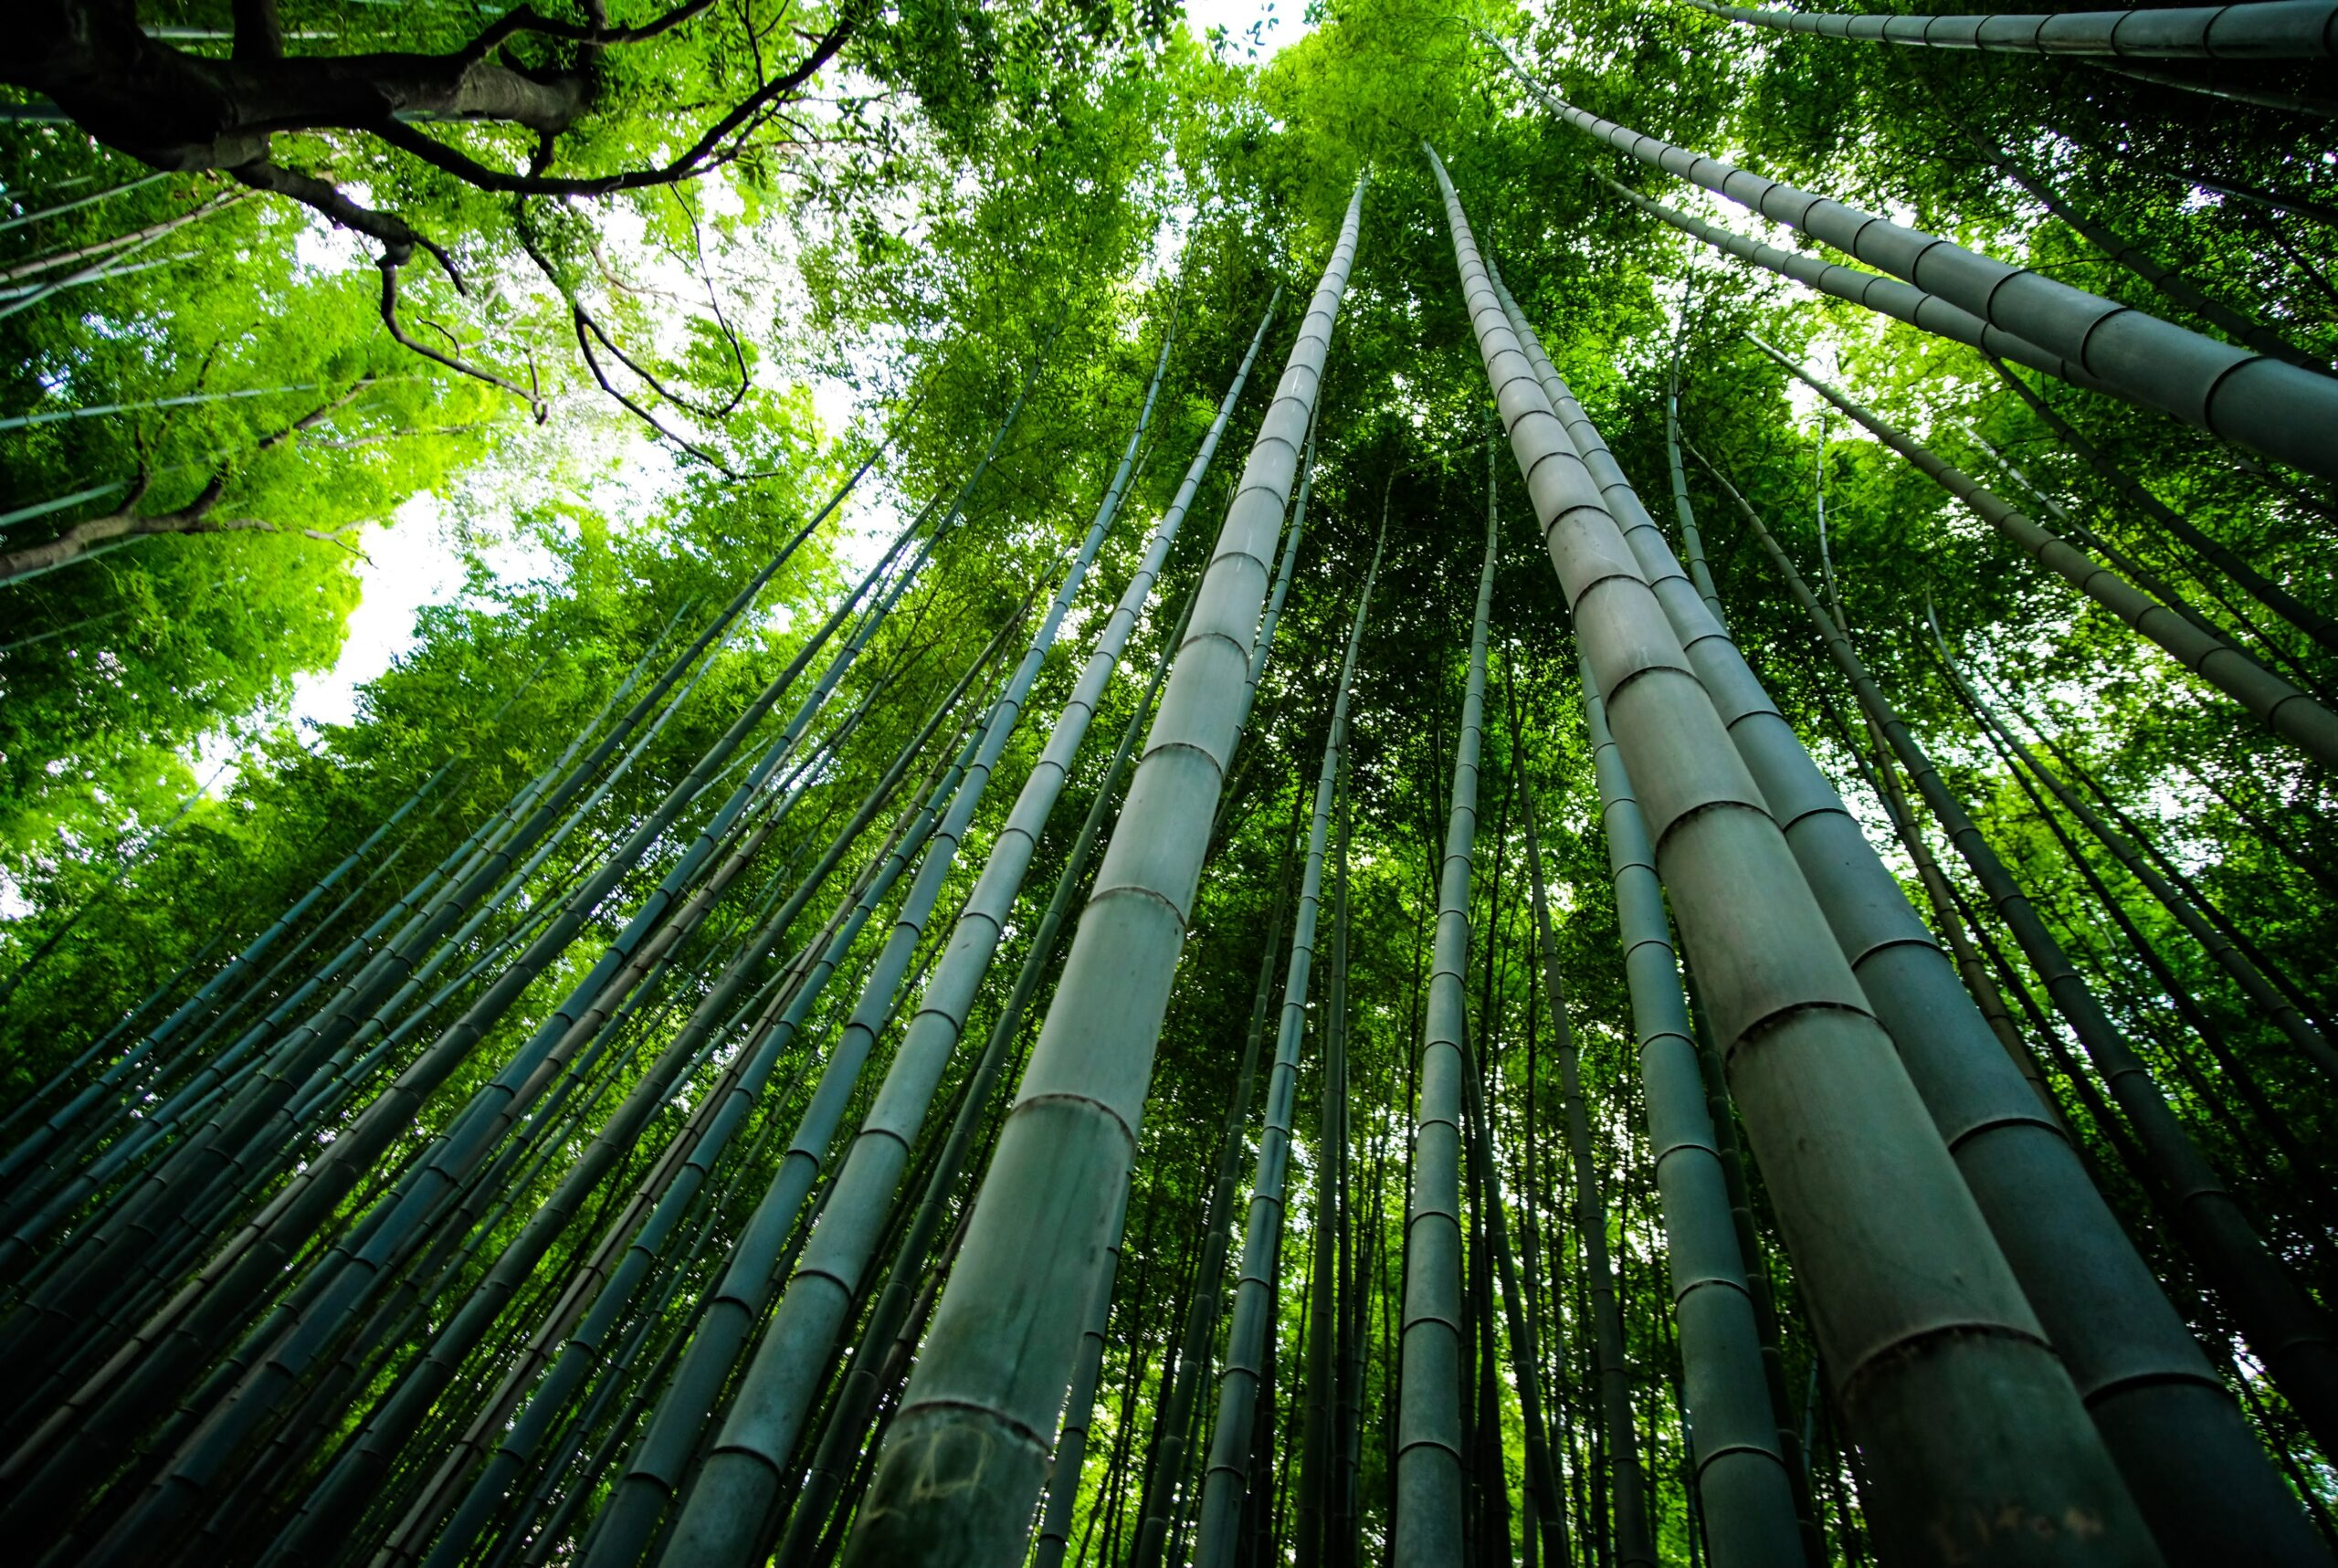 is bamboo eco friendly - bamboo plants